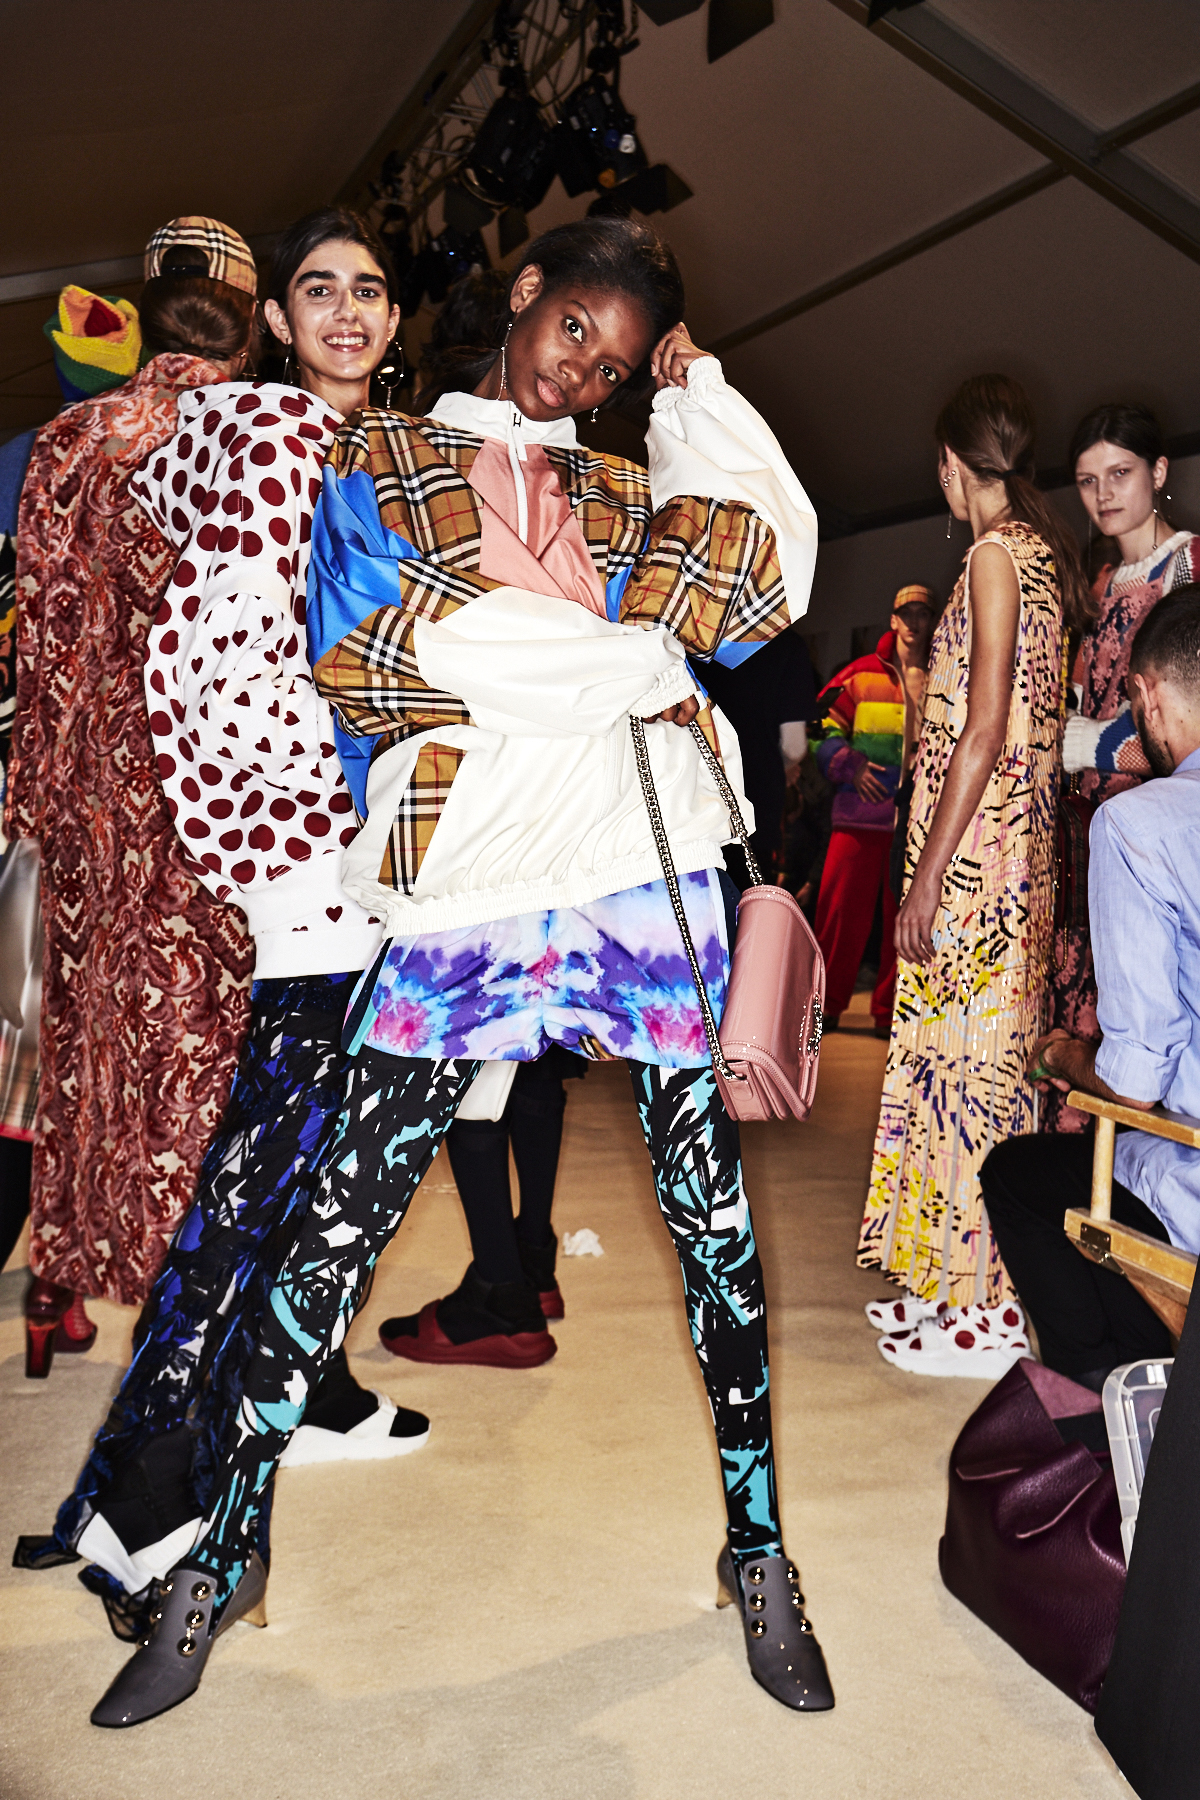 Sonny vandevelde burberry ss18 fashion show london backstage - Burberry fashion show ...